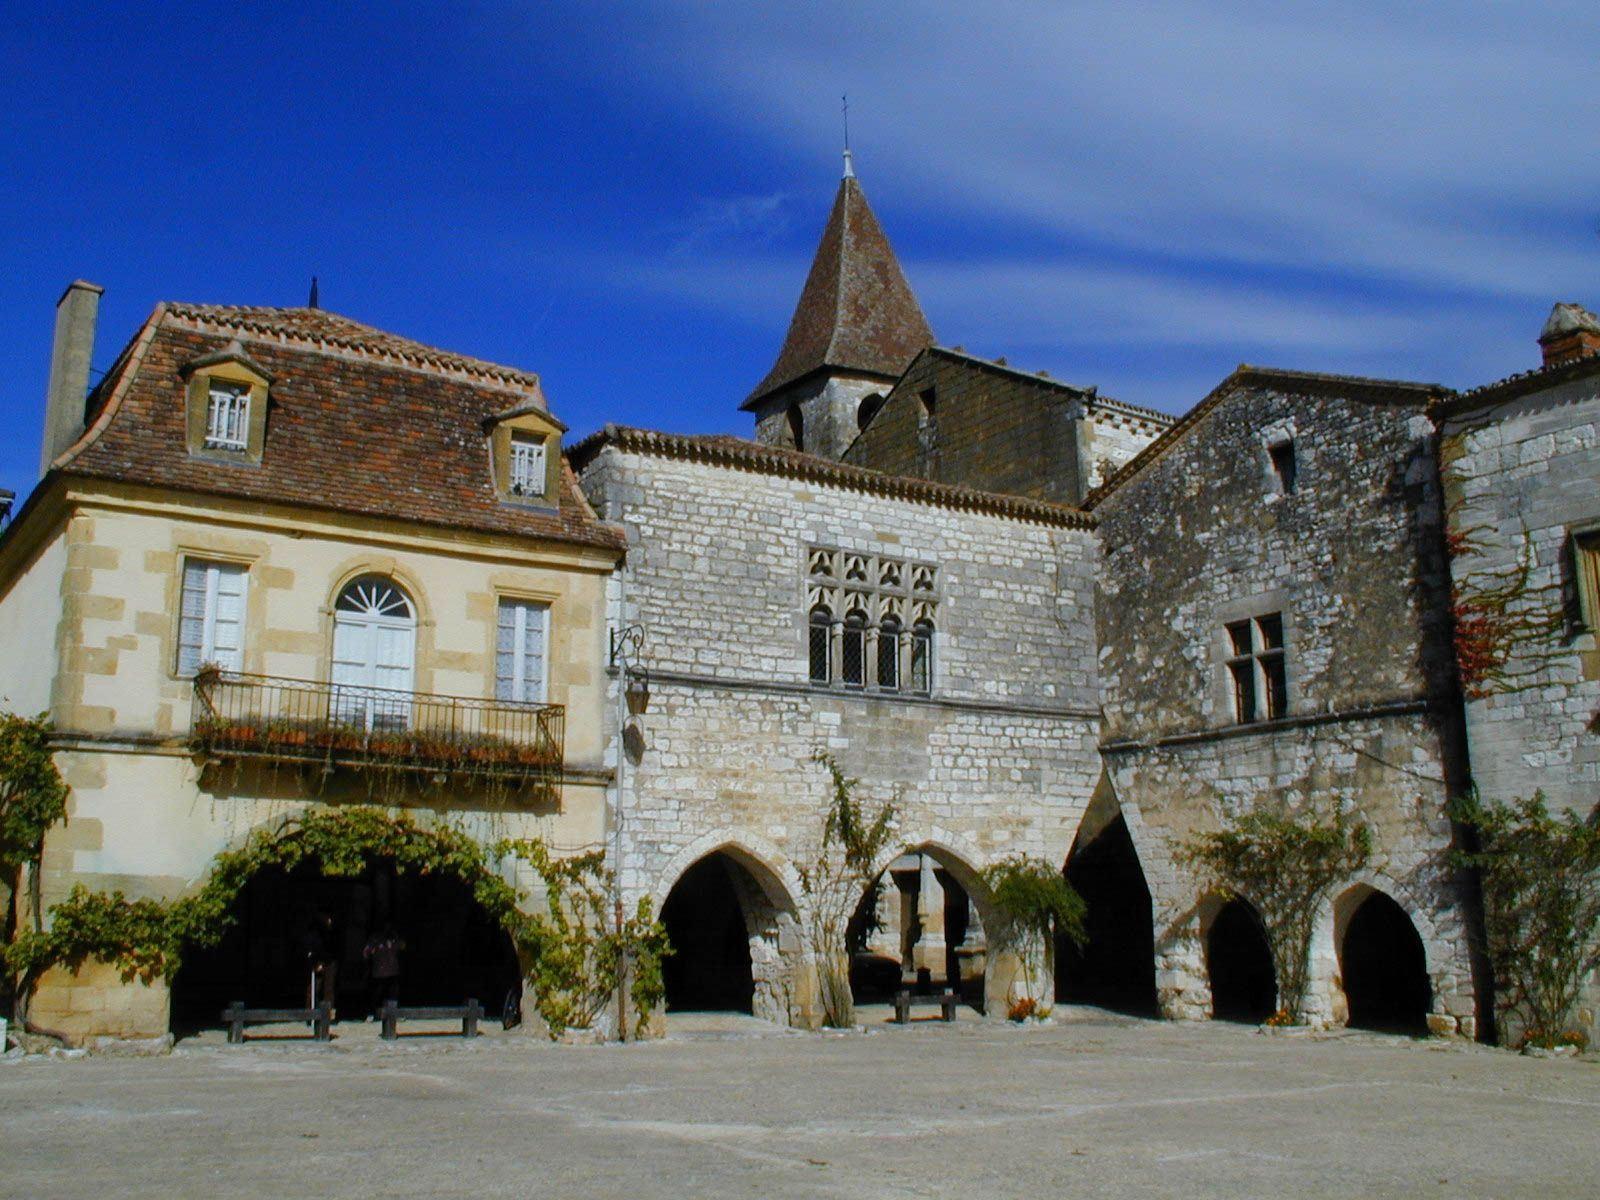 The beautiful main square of the 13th Century Bastide village of Monpazier in the Dordogne Region of France